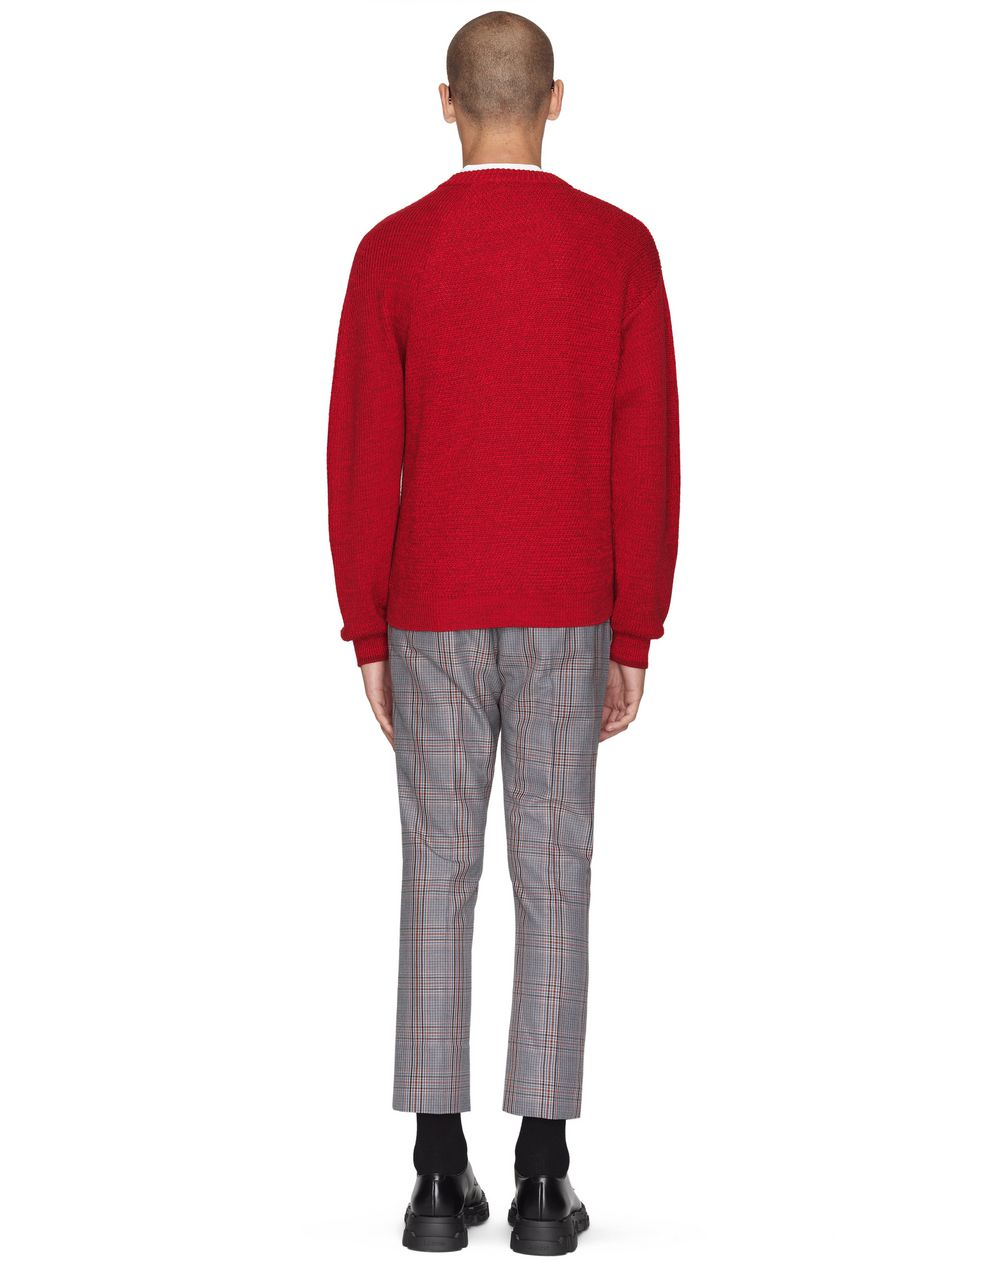 RED BUTTONED NECK SWEATER - Lanvin